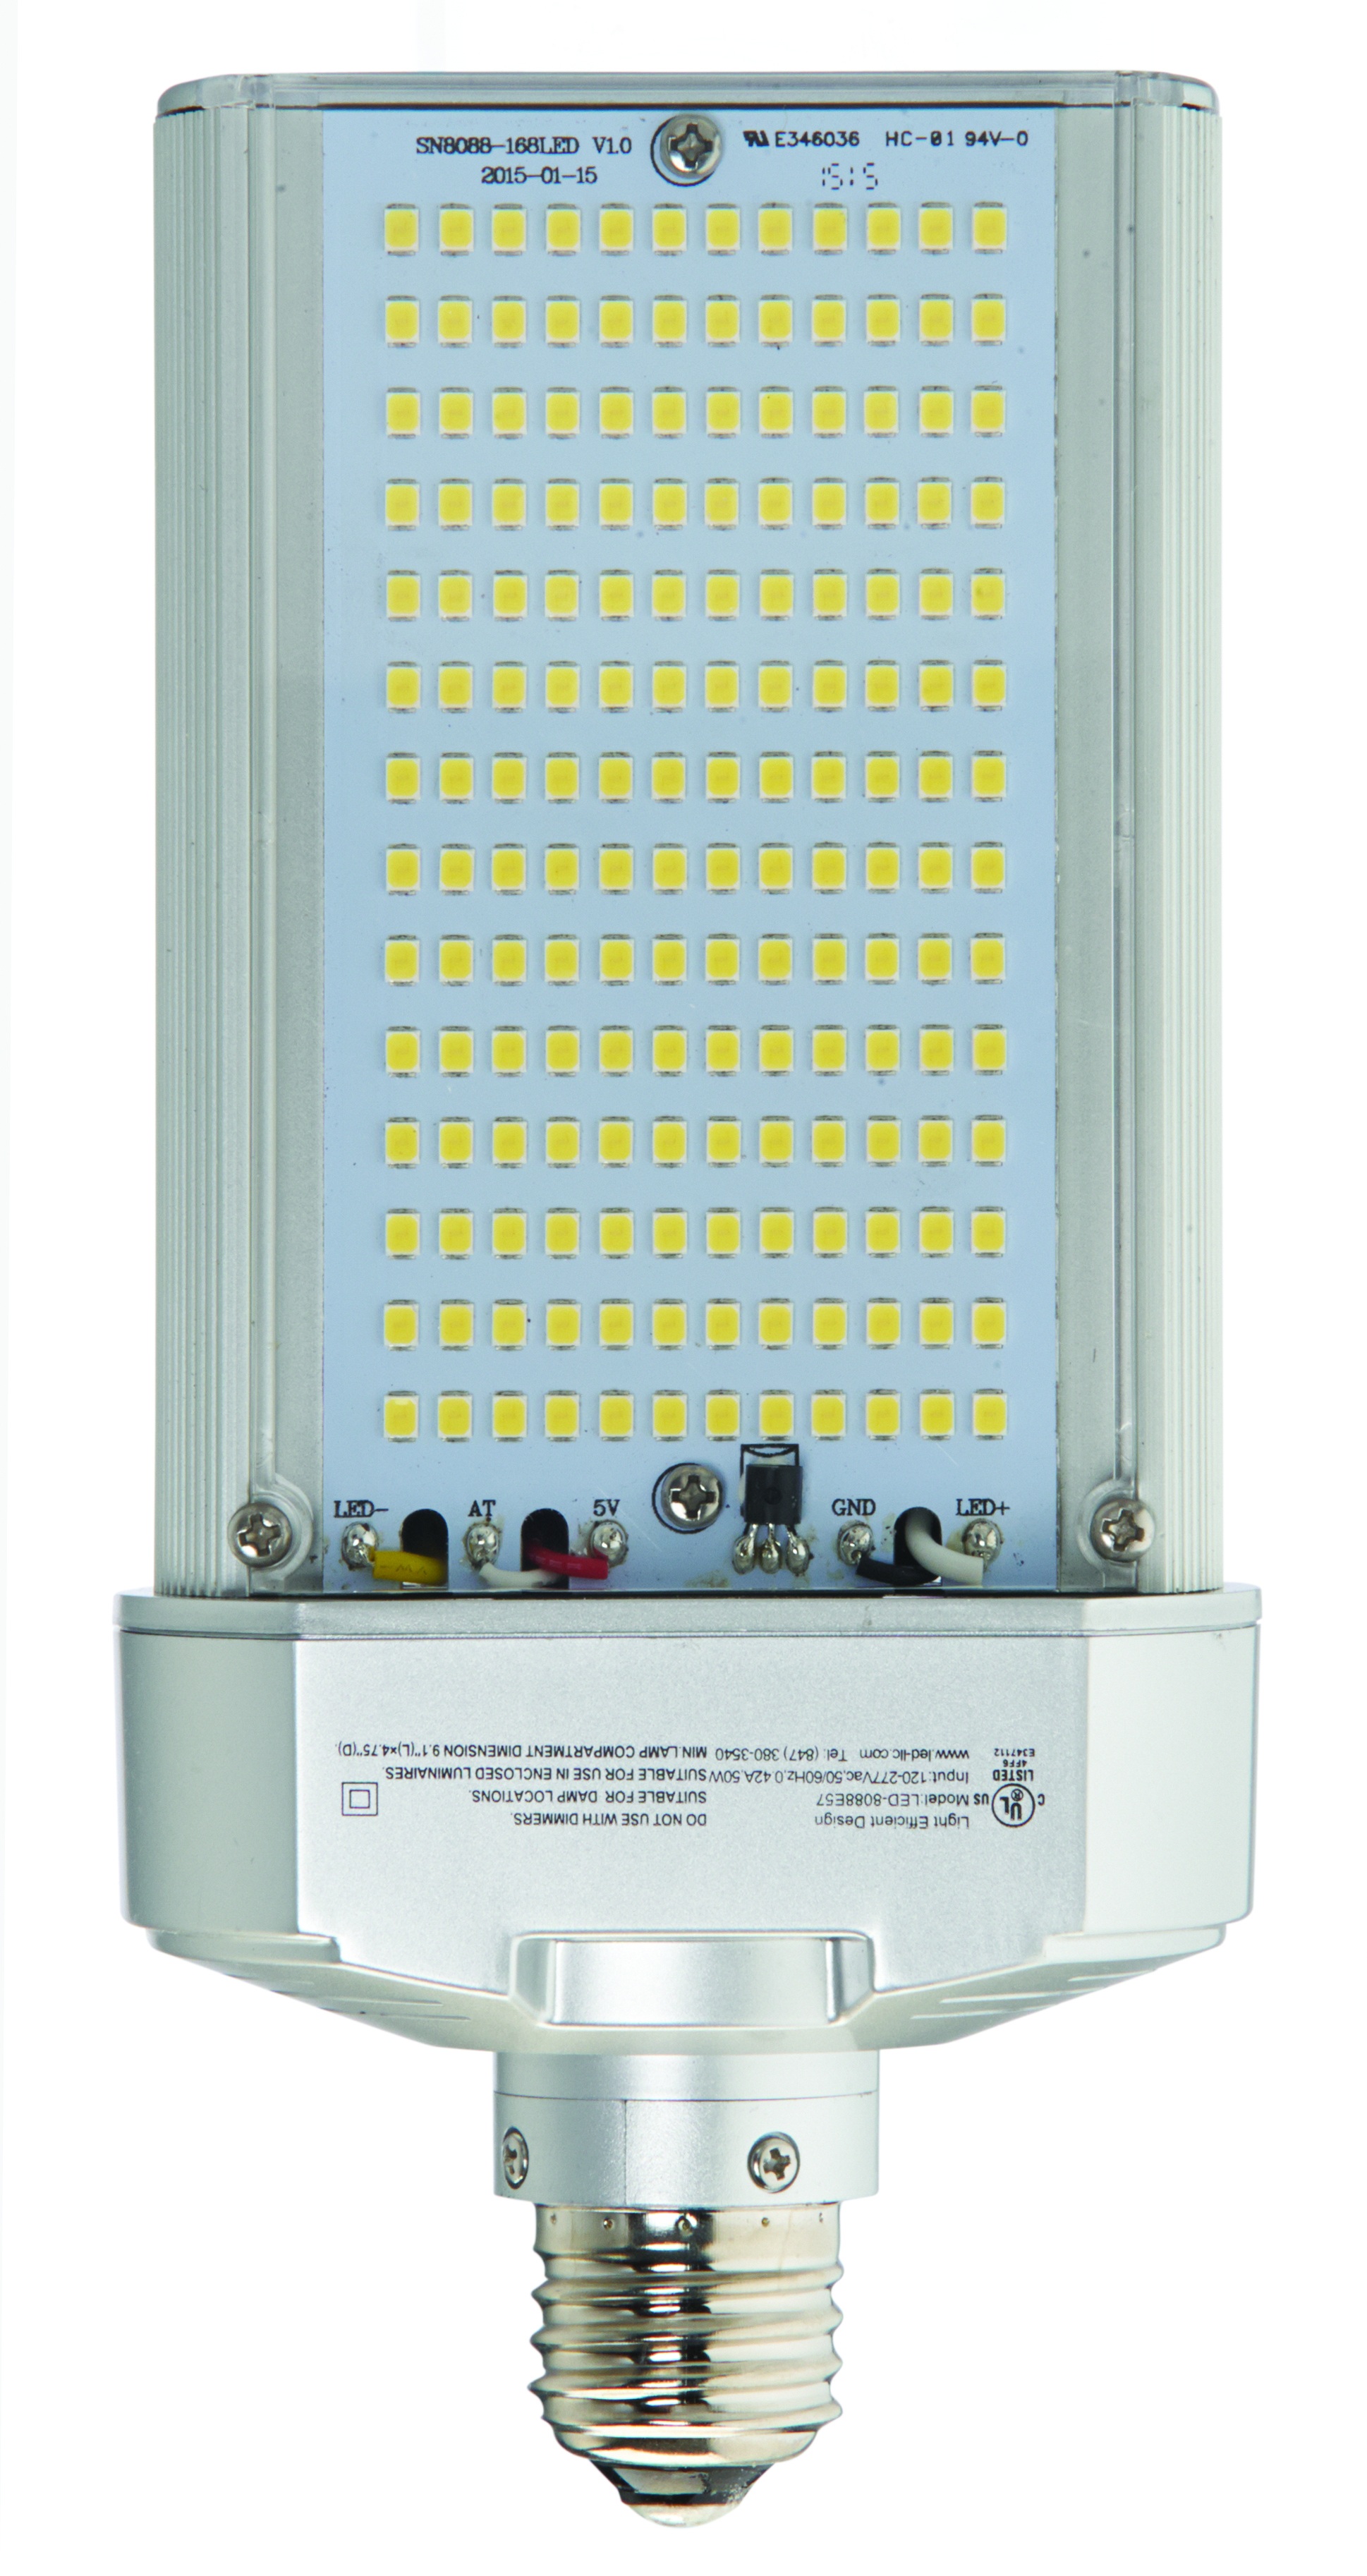 LED-8088E57 LED 50W LED WALL PACK RETROFIT 5700K E26